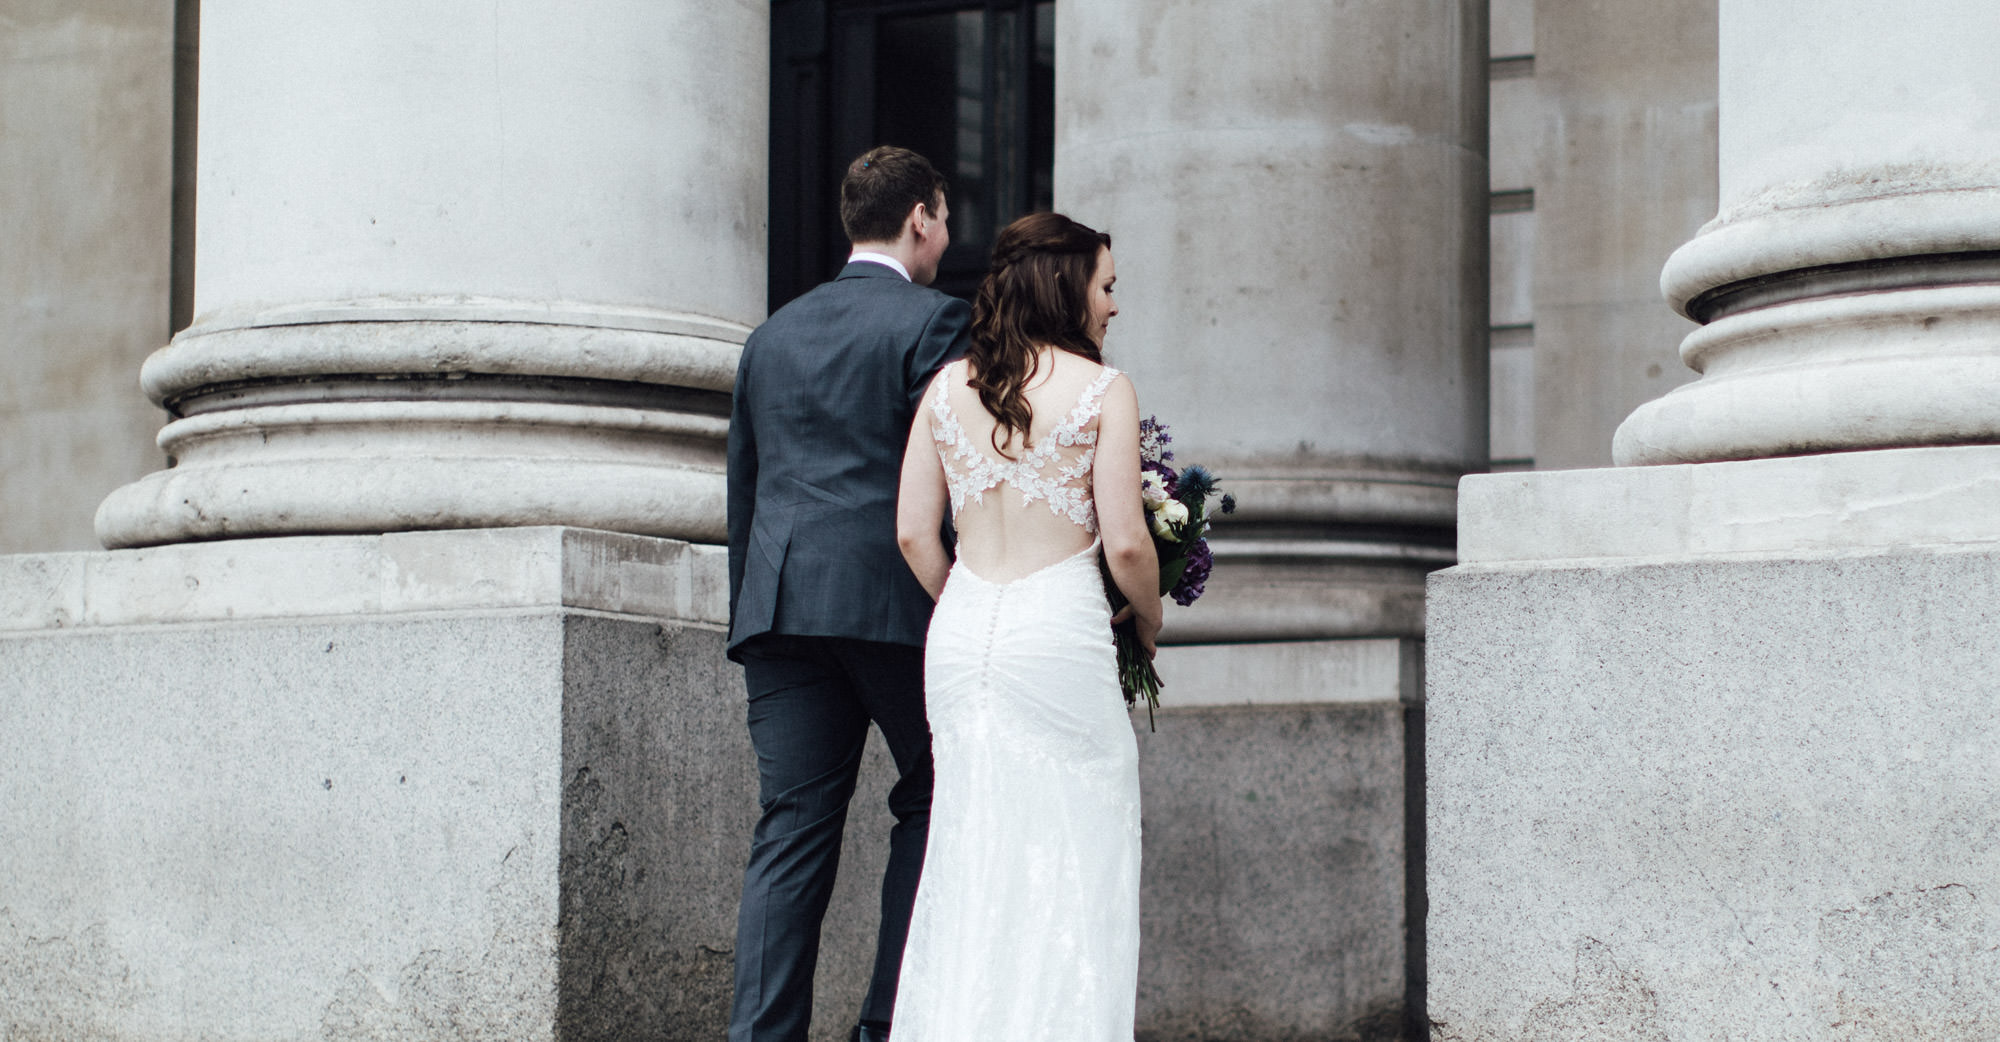 1 Lombard Street wedding photography | Central London wedding venue